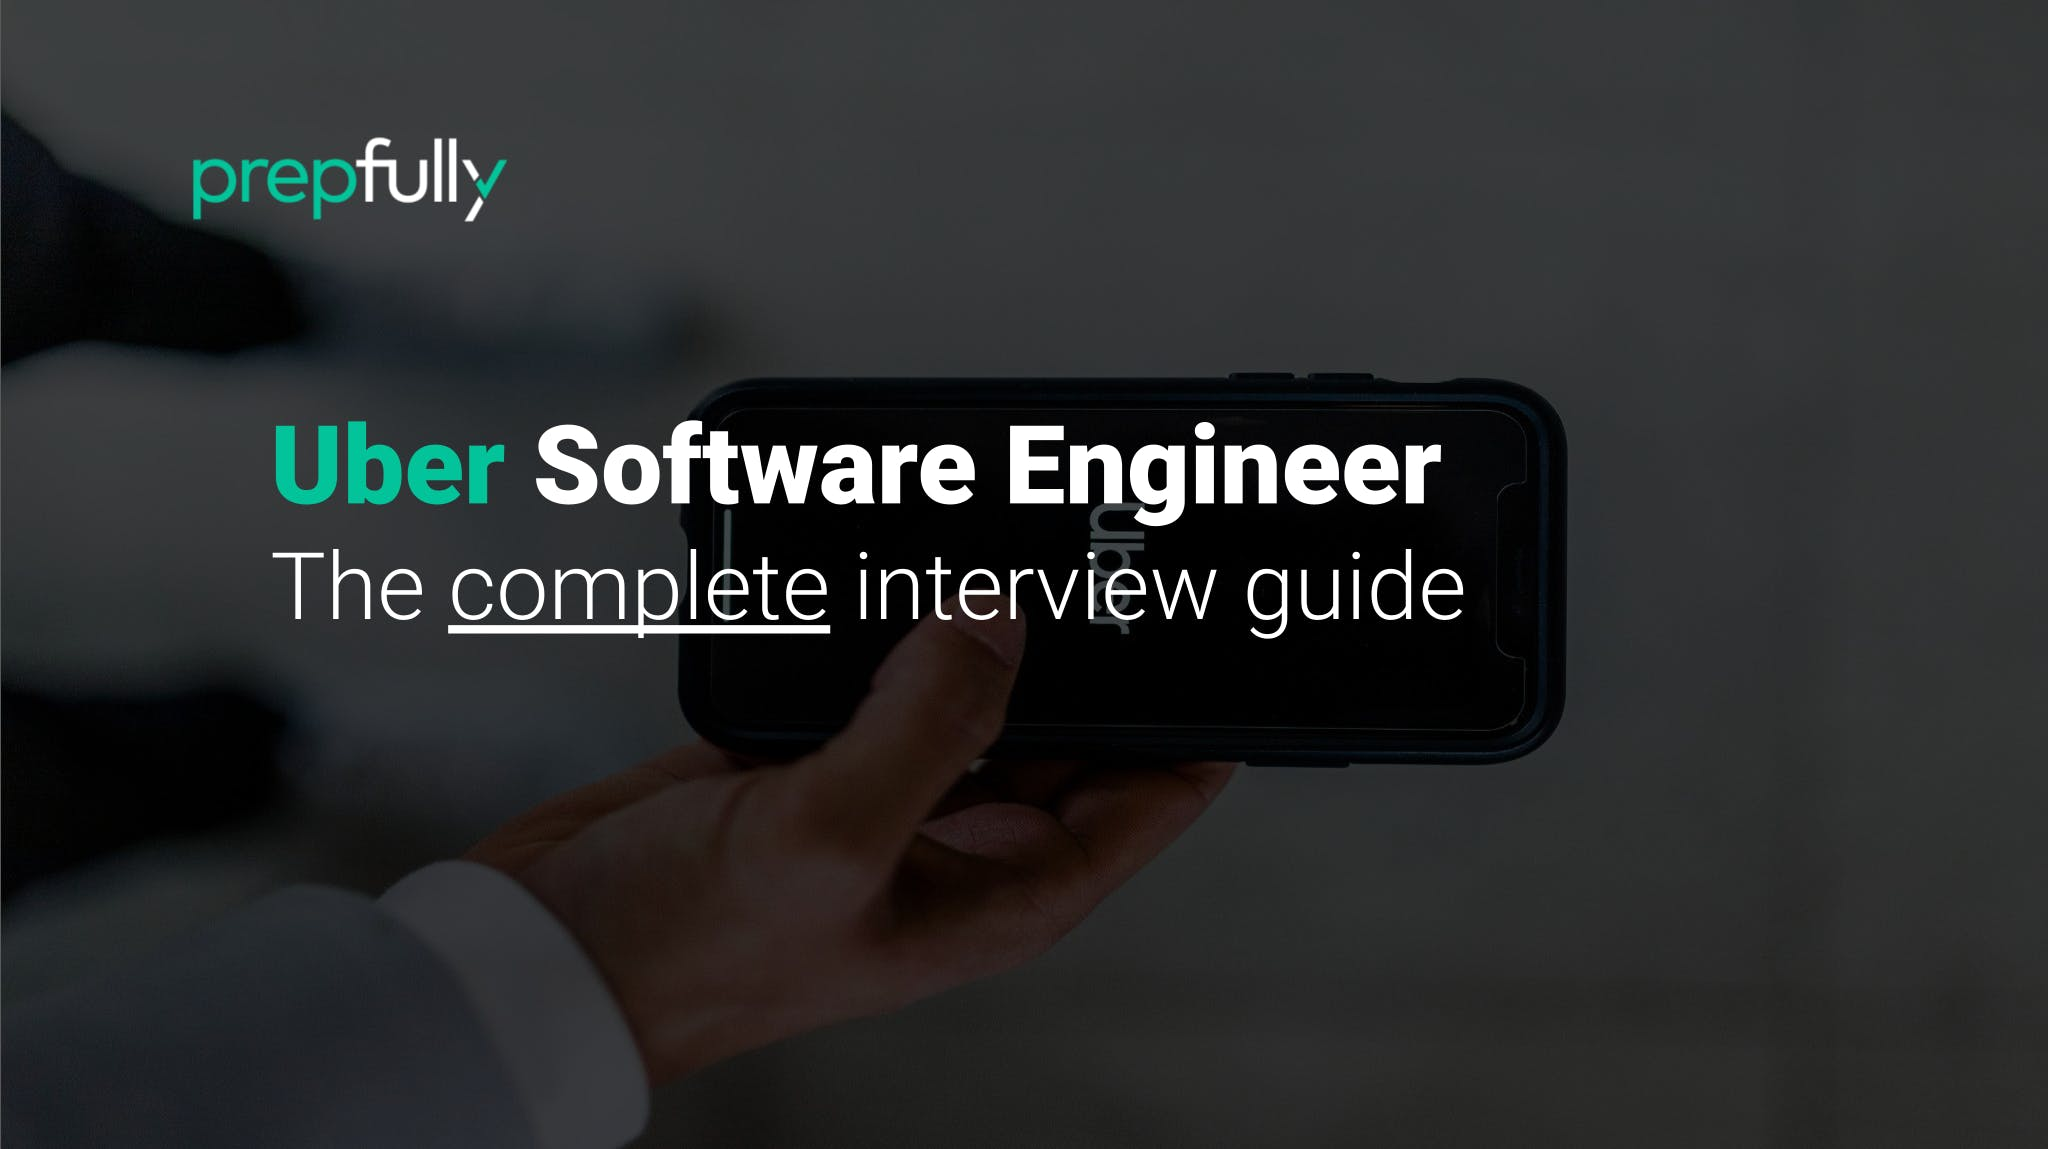 Interview guide for Uber Software Engineer